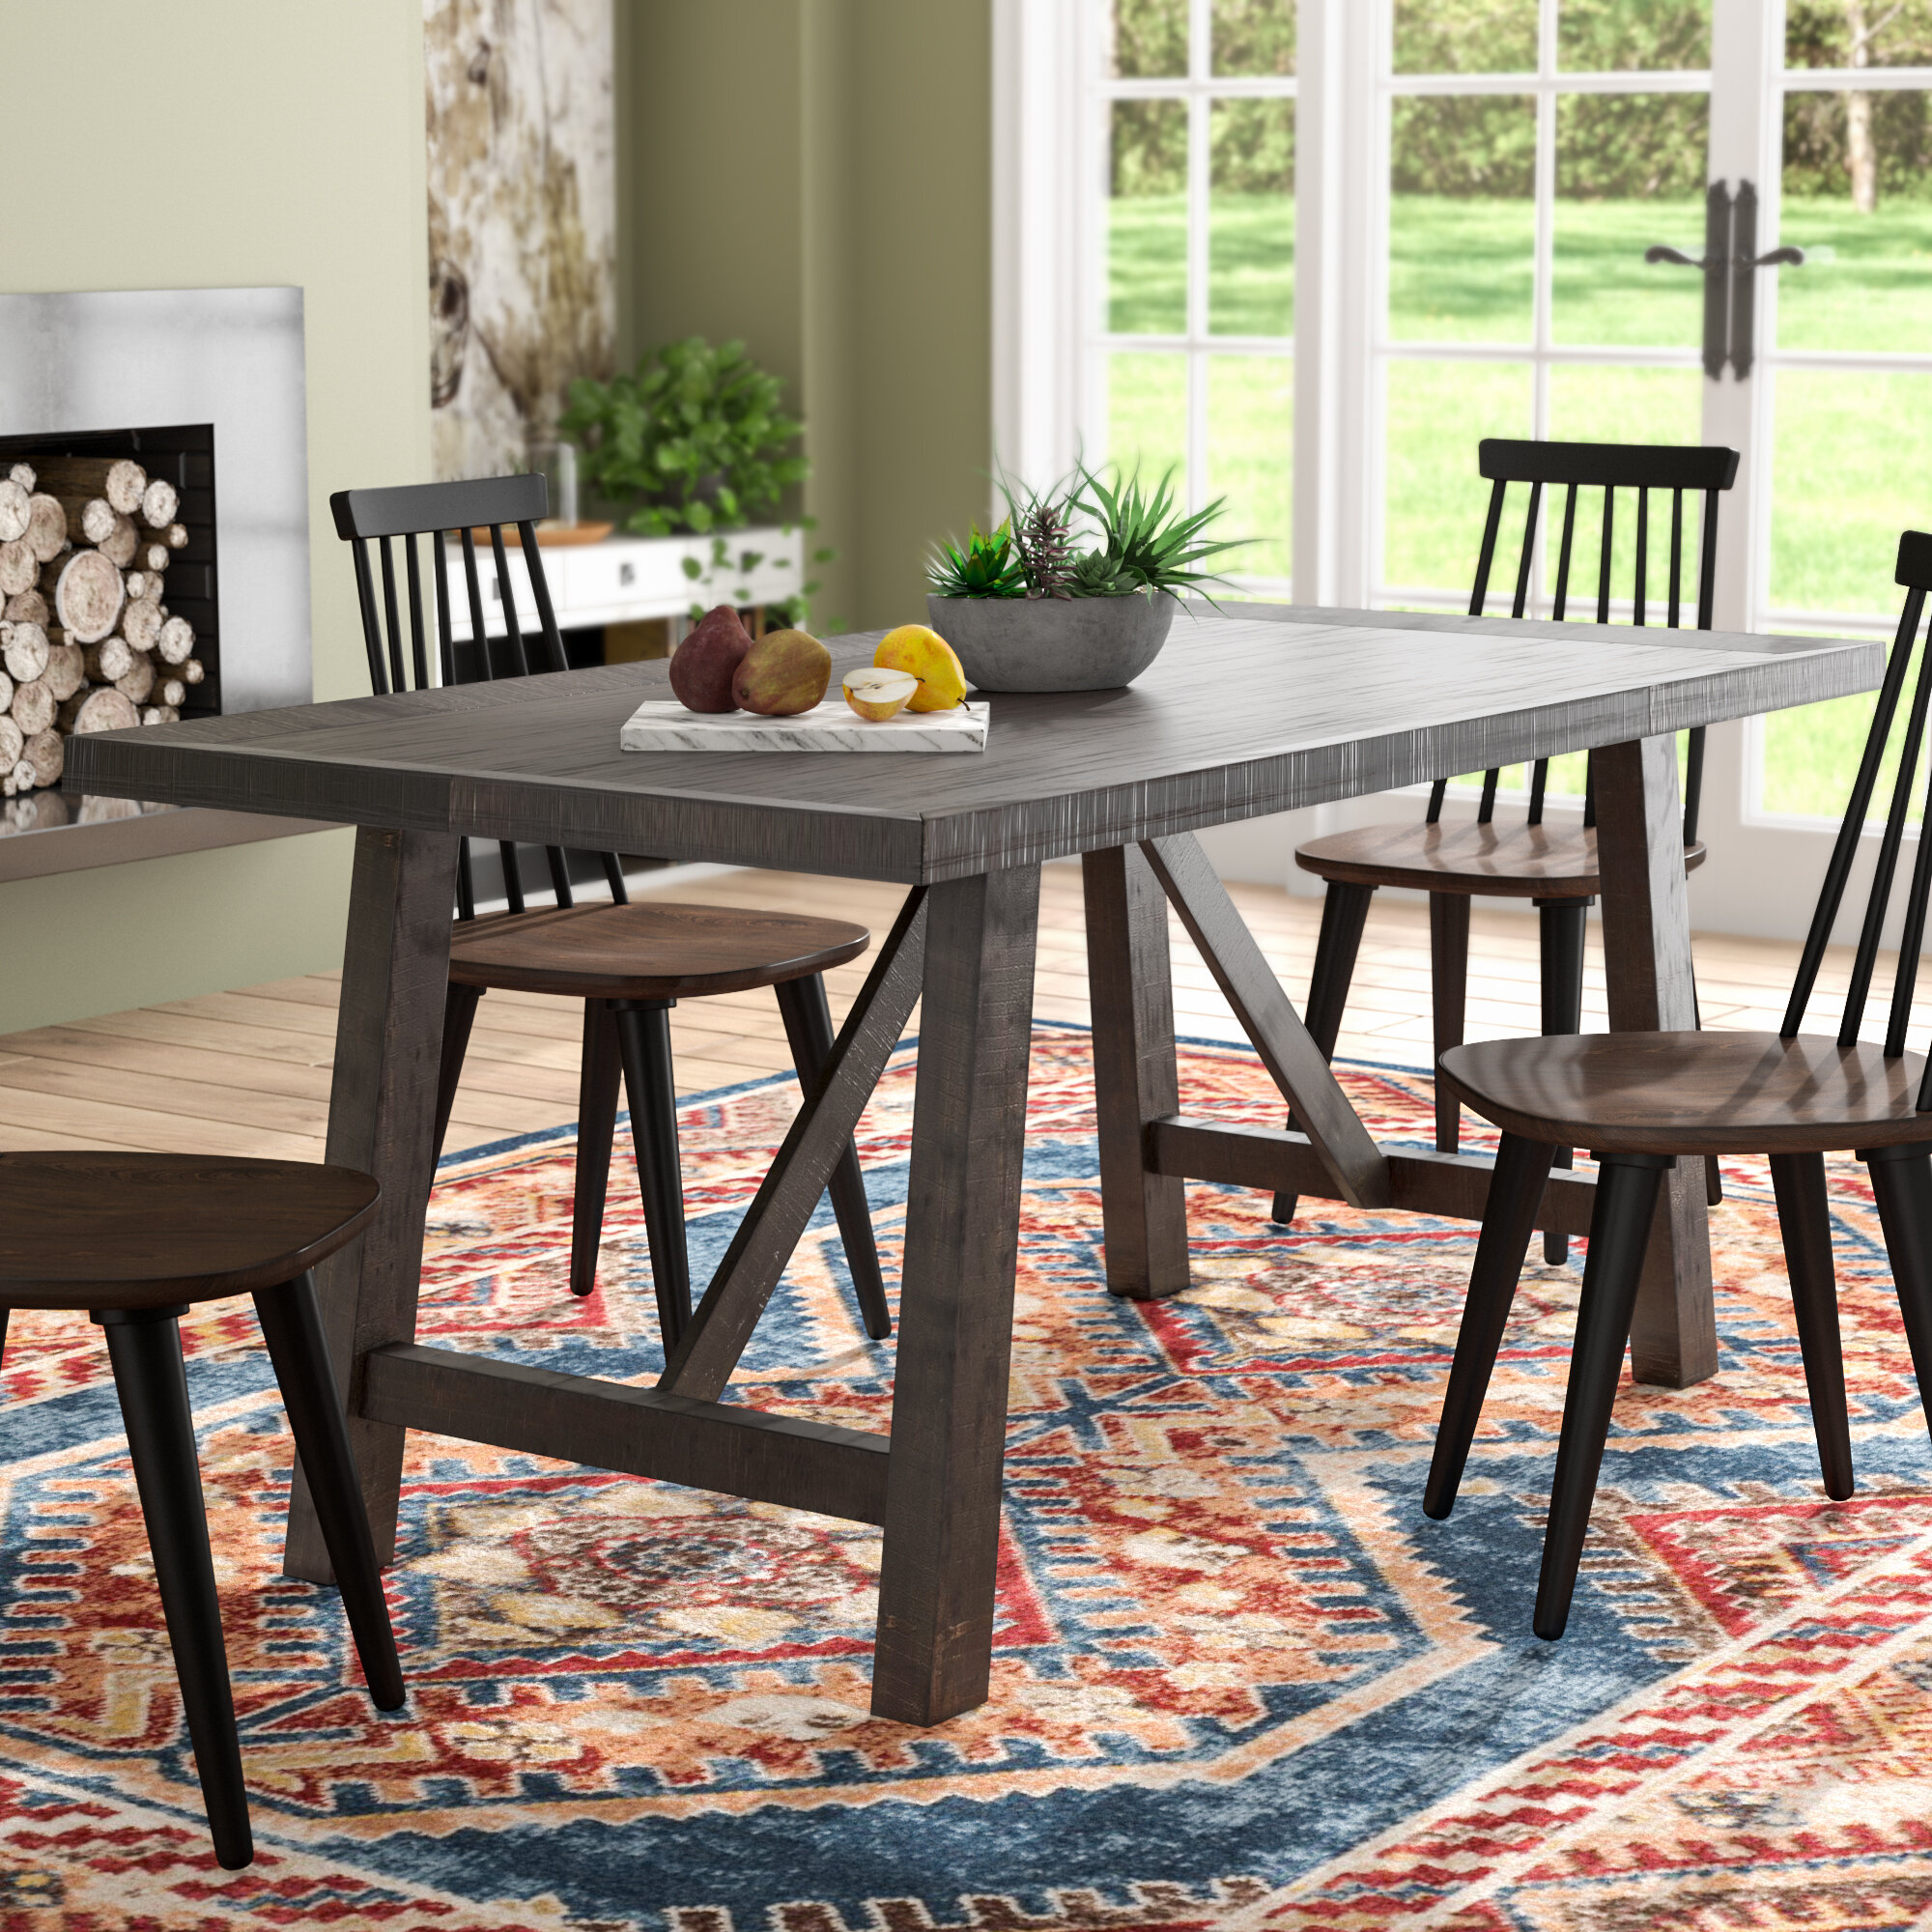 Marvelous 36 X 48 Dining Table Wayfair Home Interior And Landscaping Pimpapssignezvosmurscom